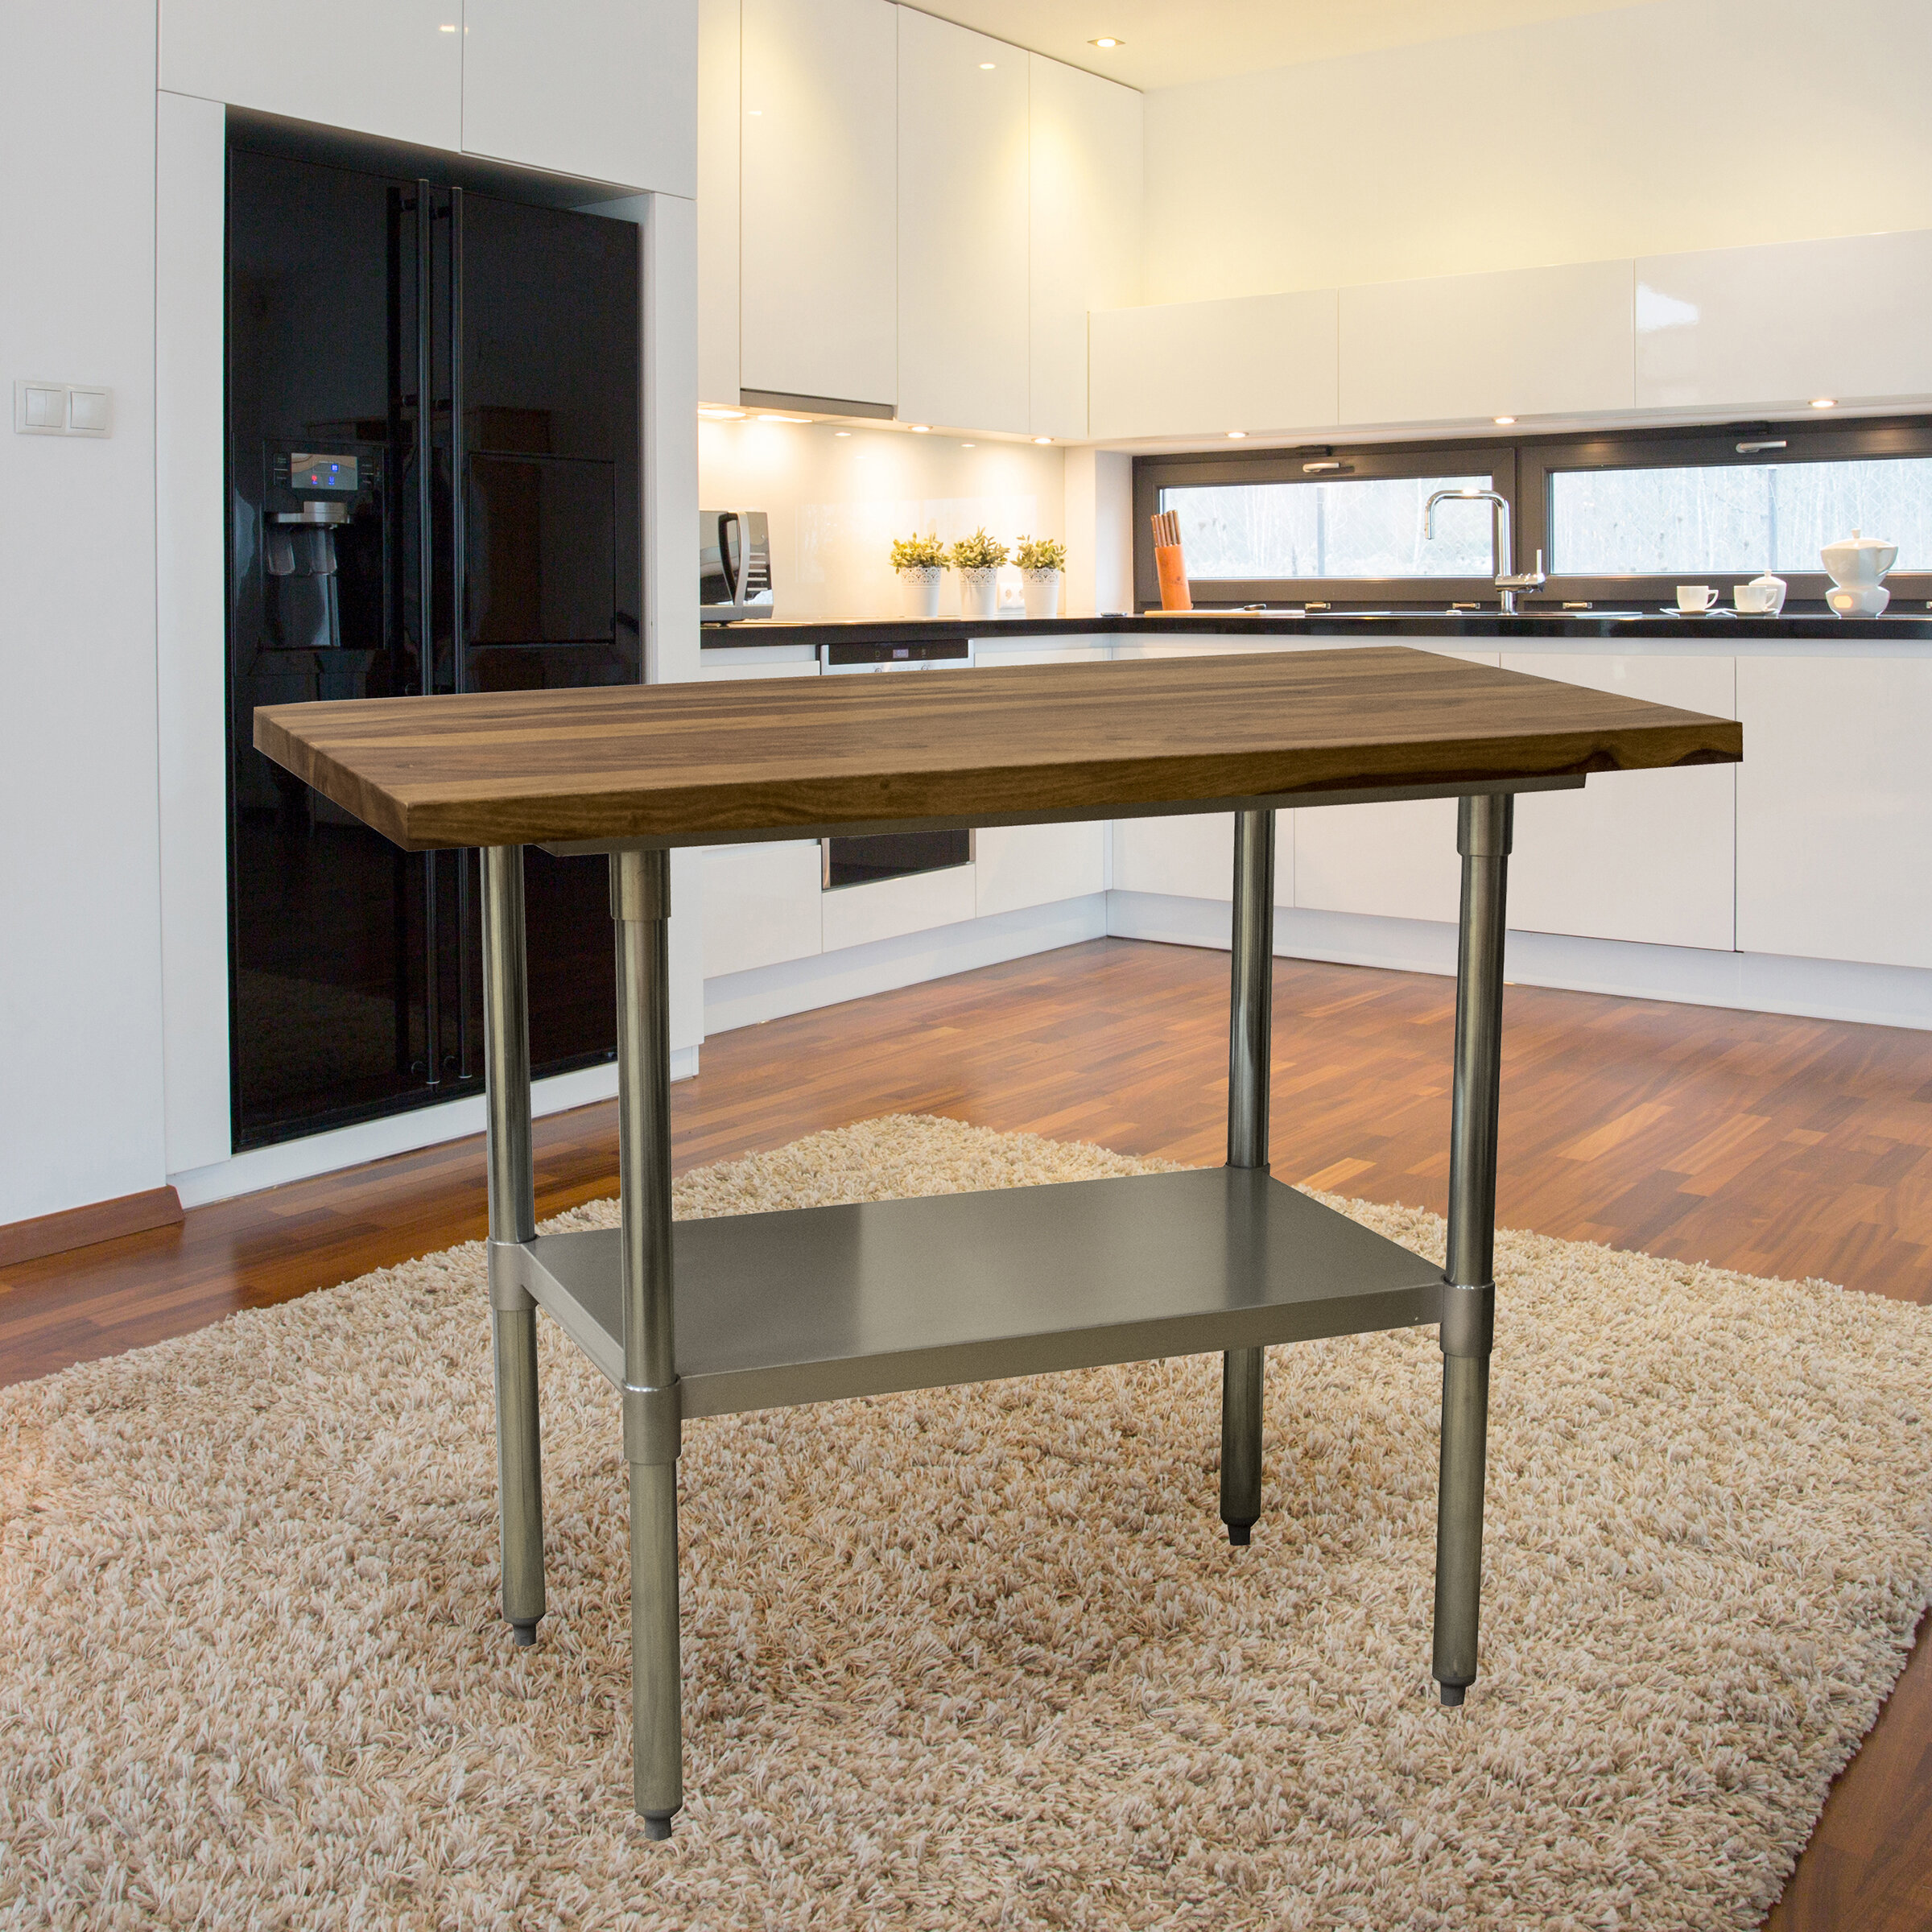 Robles 9.9'' Stainless Steel Prep Table with Solid Wood Top